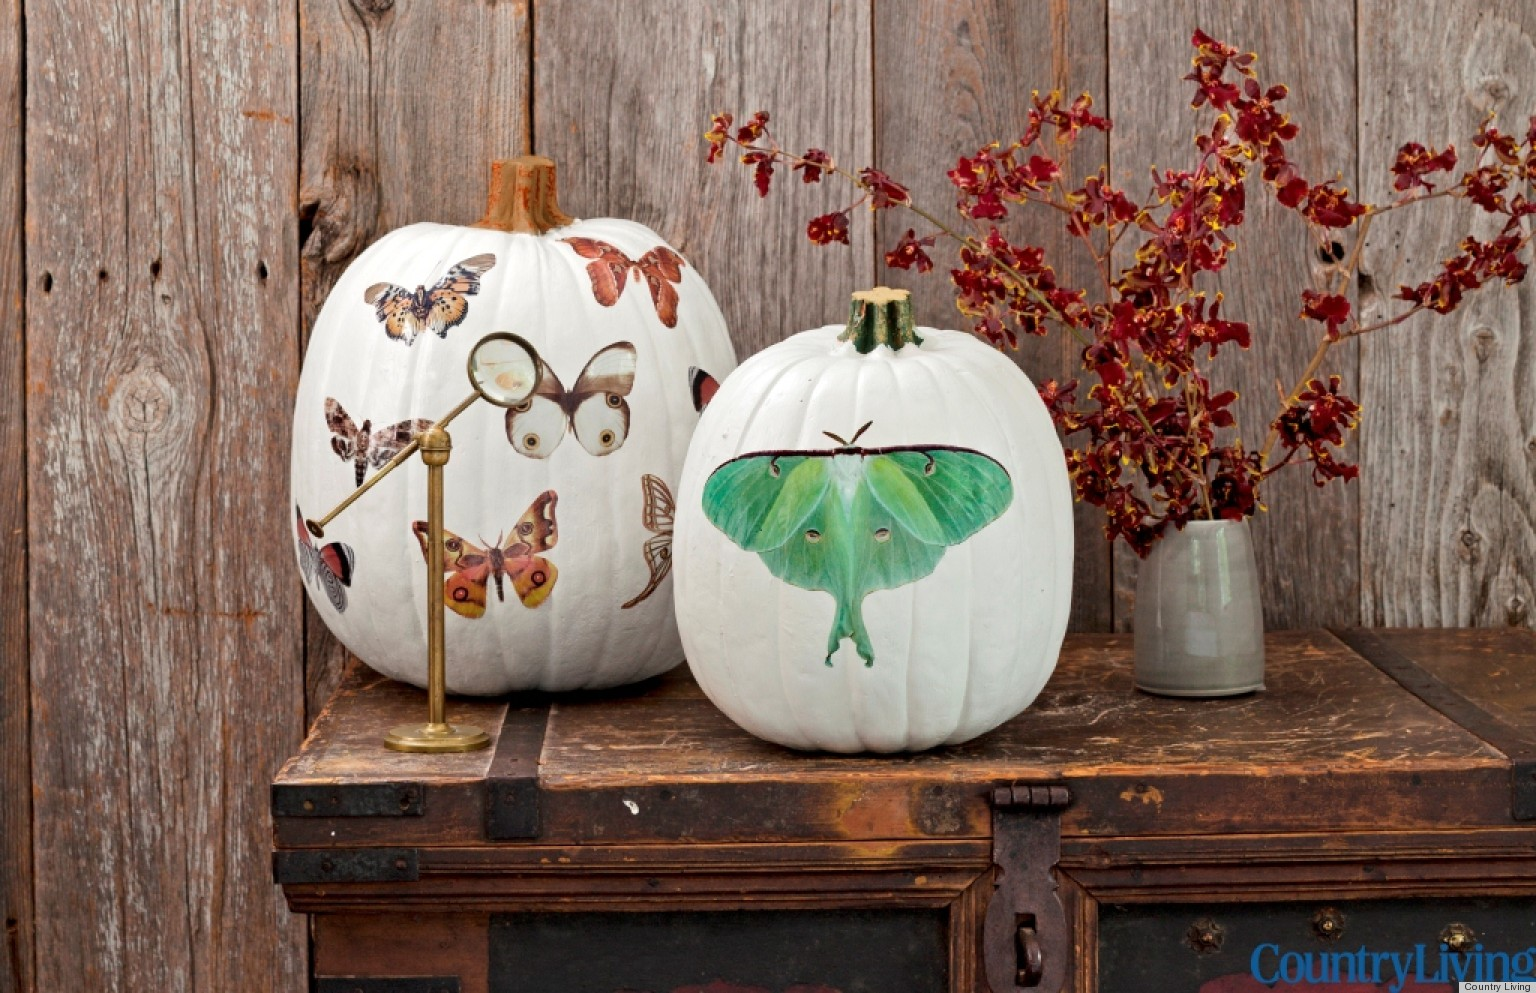 Halloween Decorations: Moth Decal Pumpkins From Country Living ...